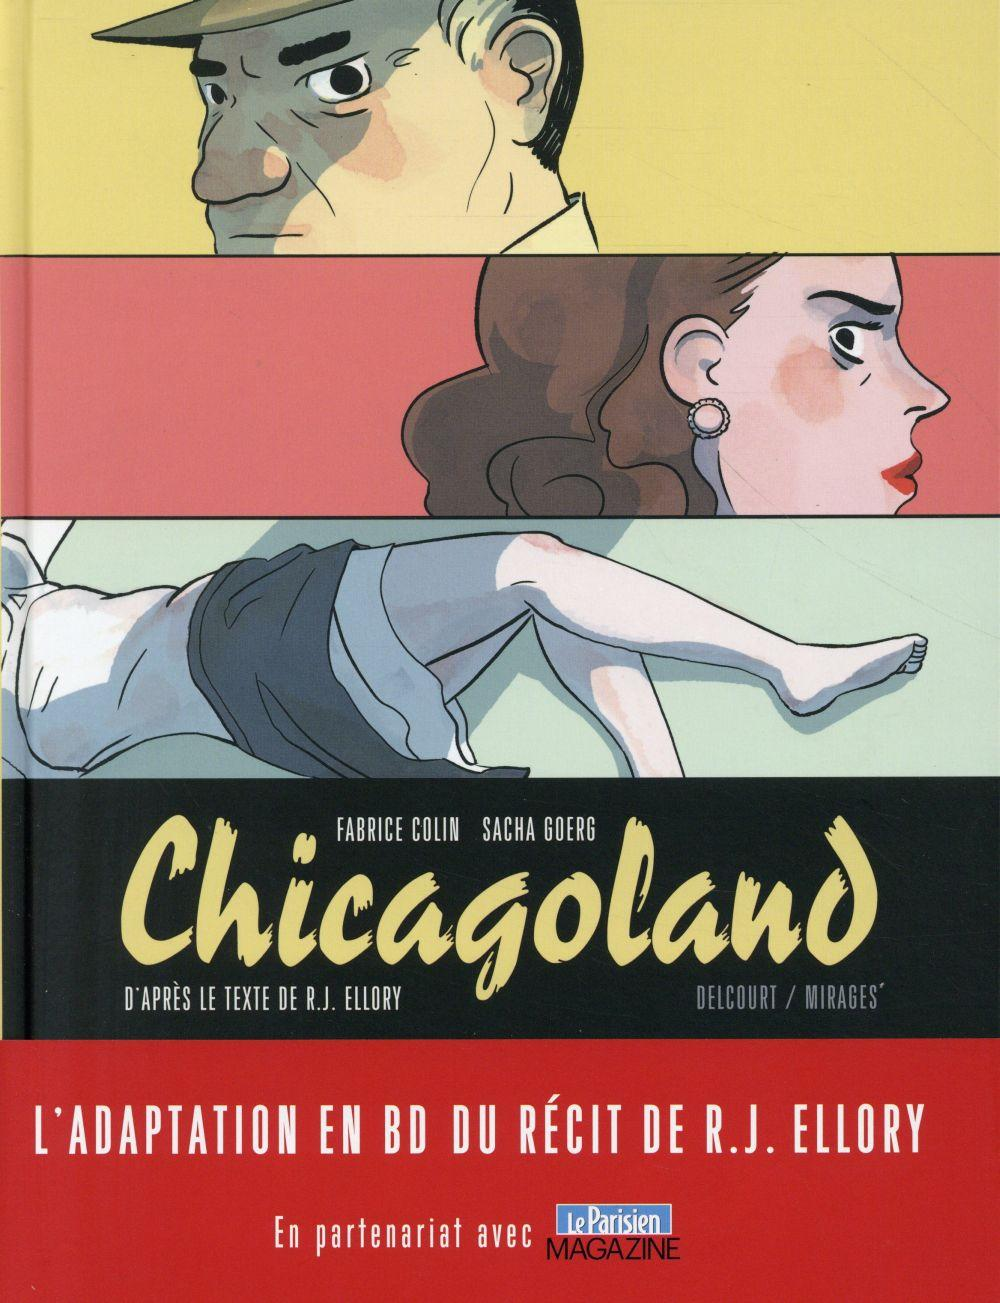 Chicagoland  - Fabrice Colin  - Sacha Goerg